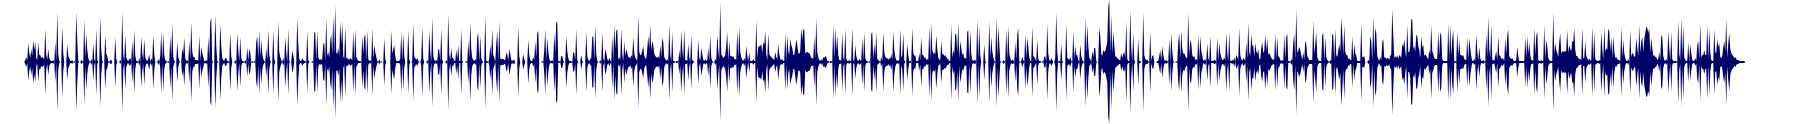 waveform of track #38977